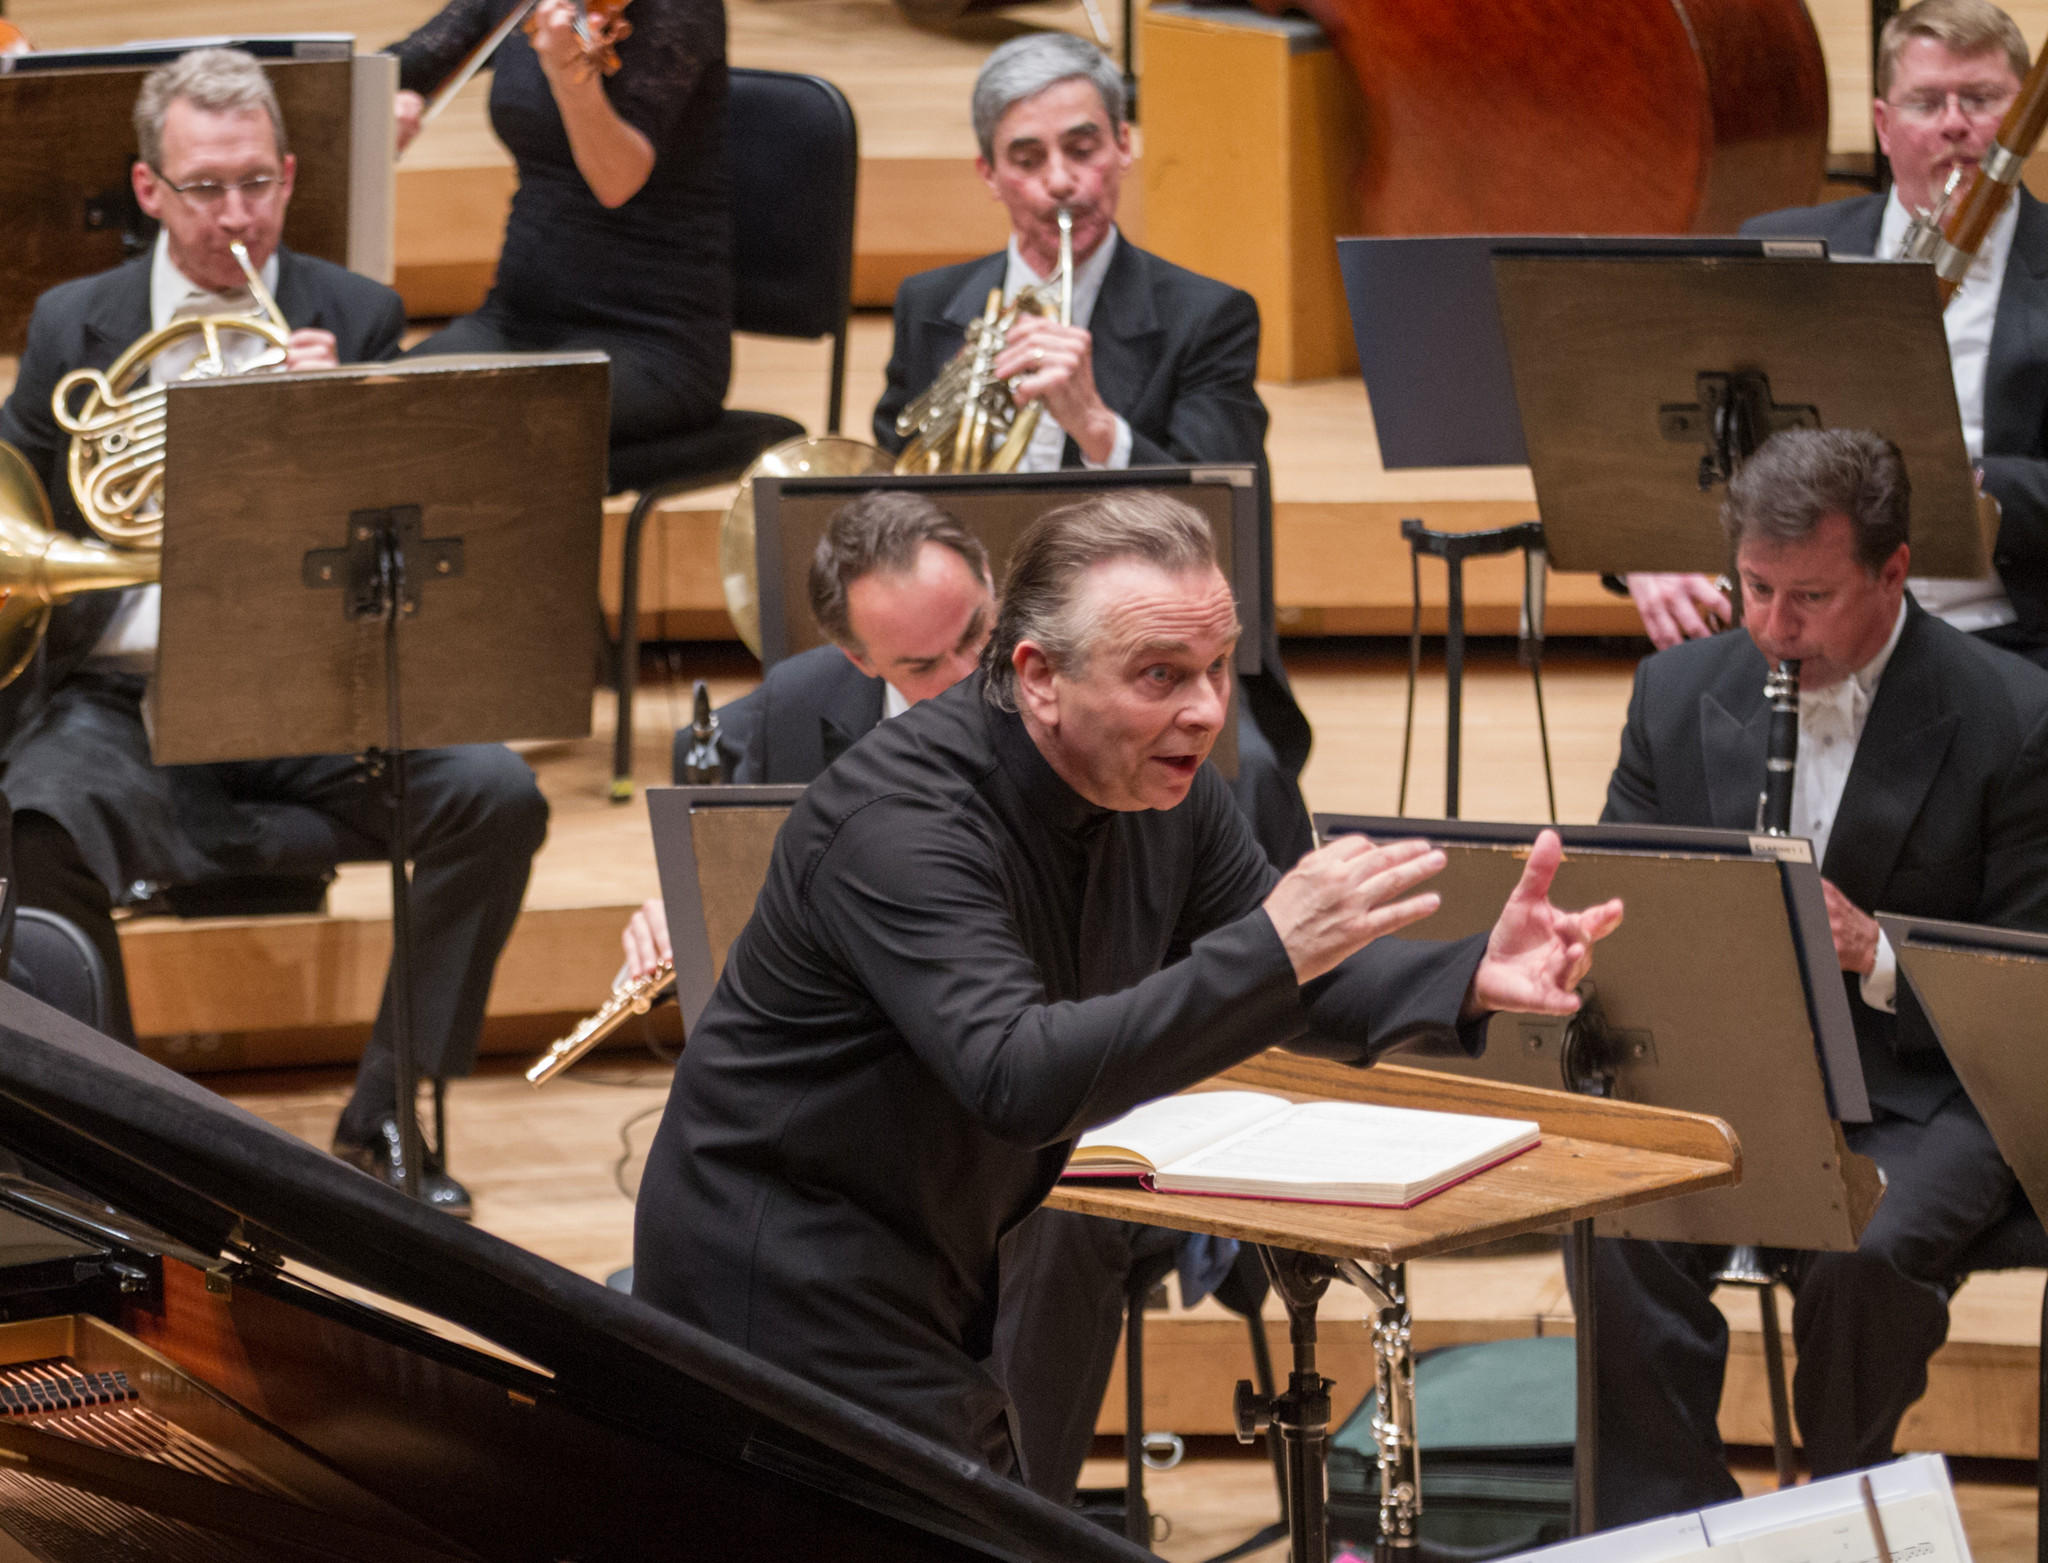 Mark Elder leads the Chicago Symphony Orchestra at Symphony Hall.